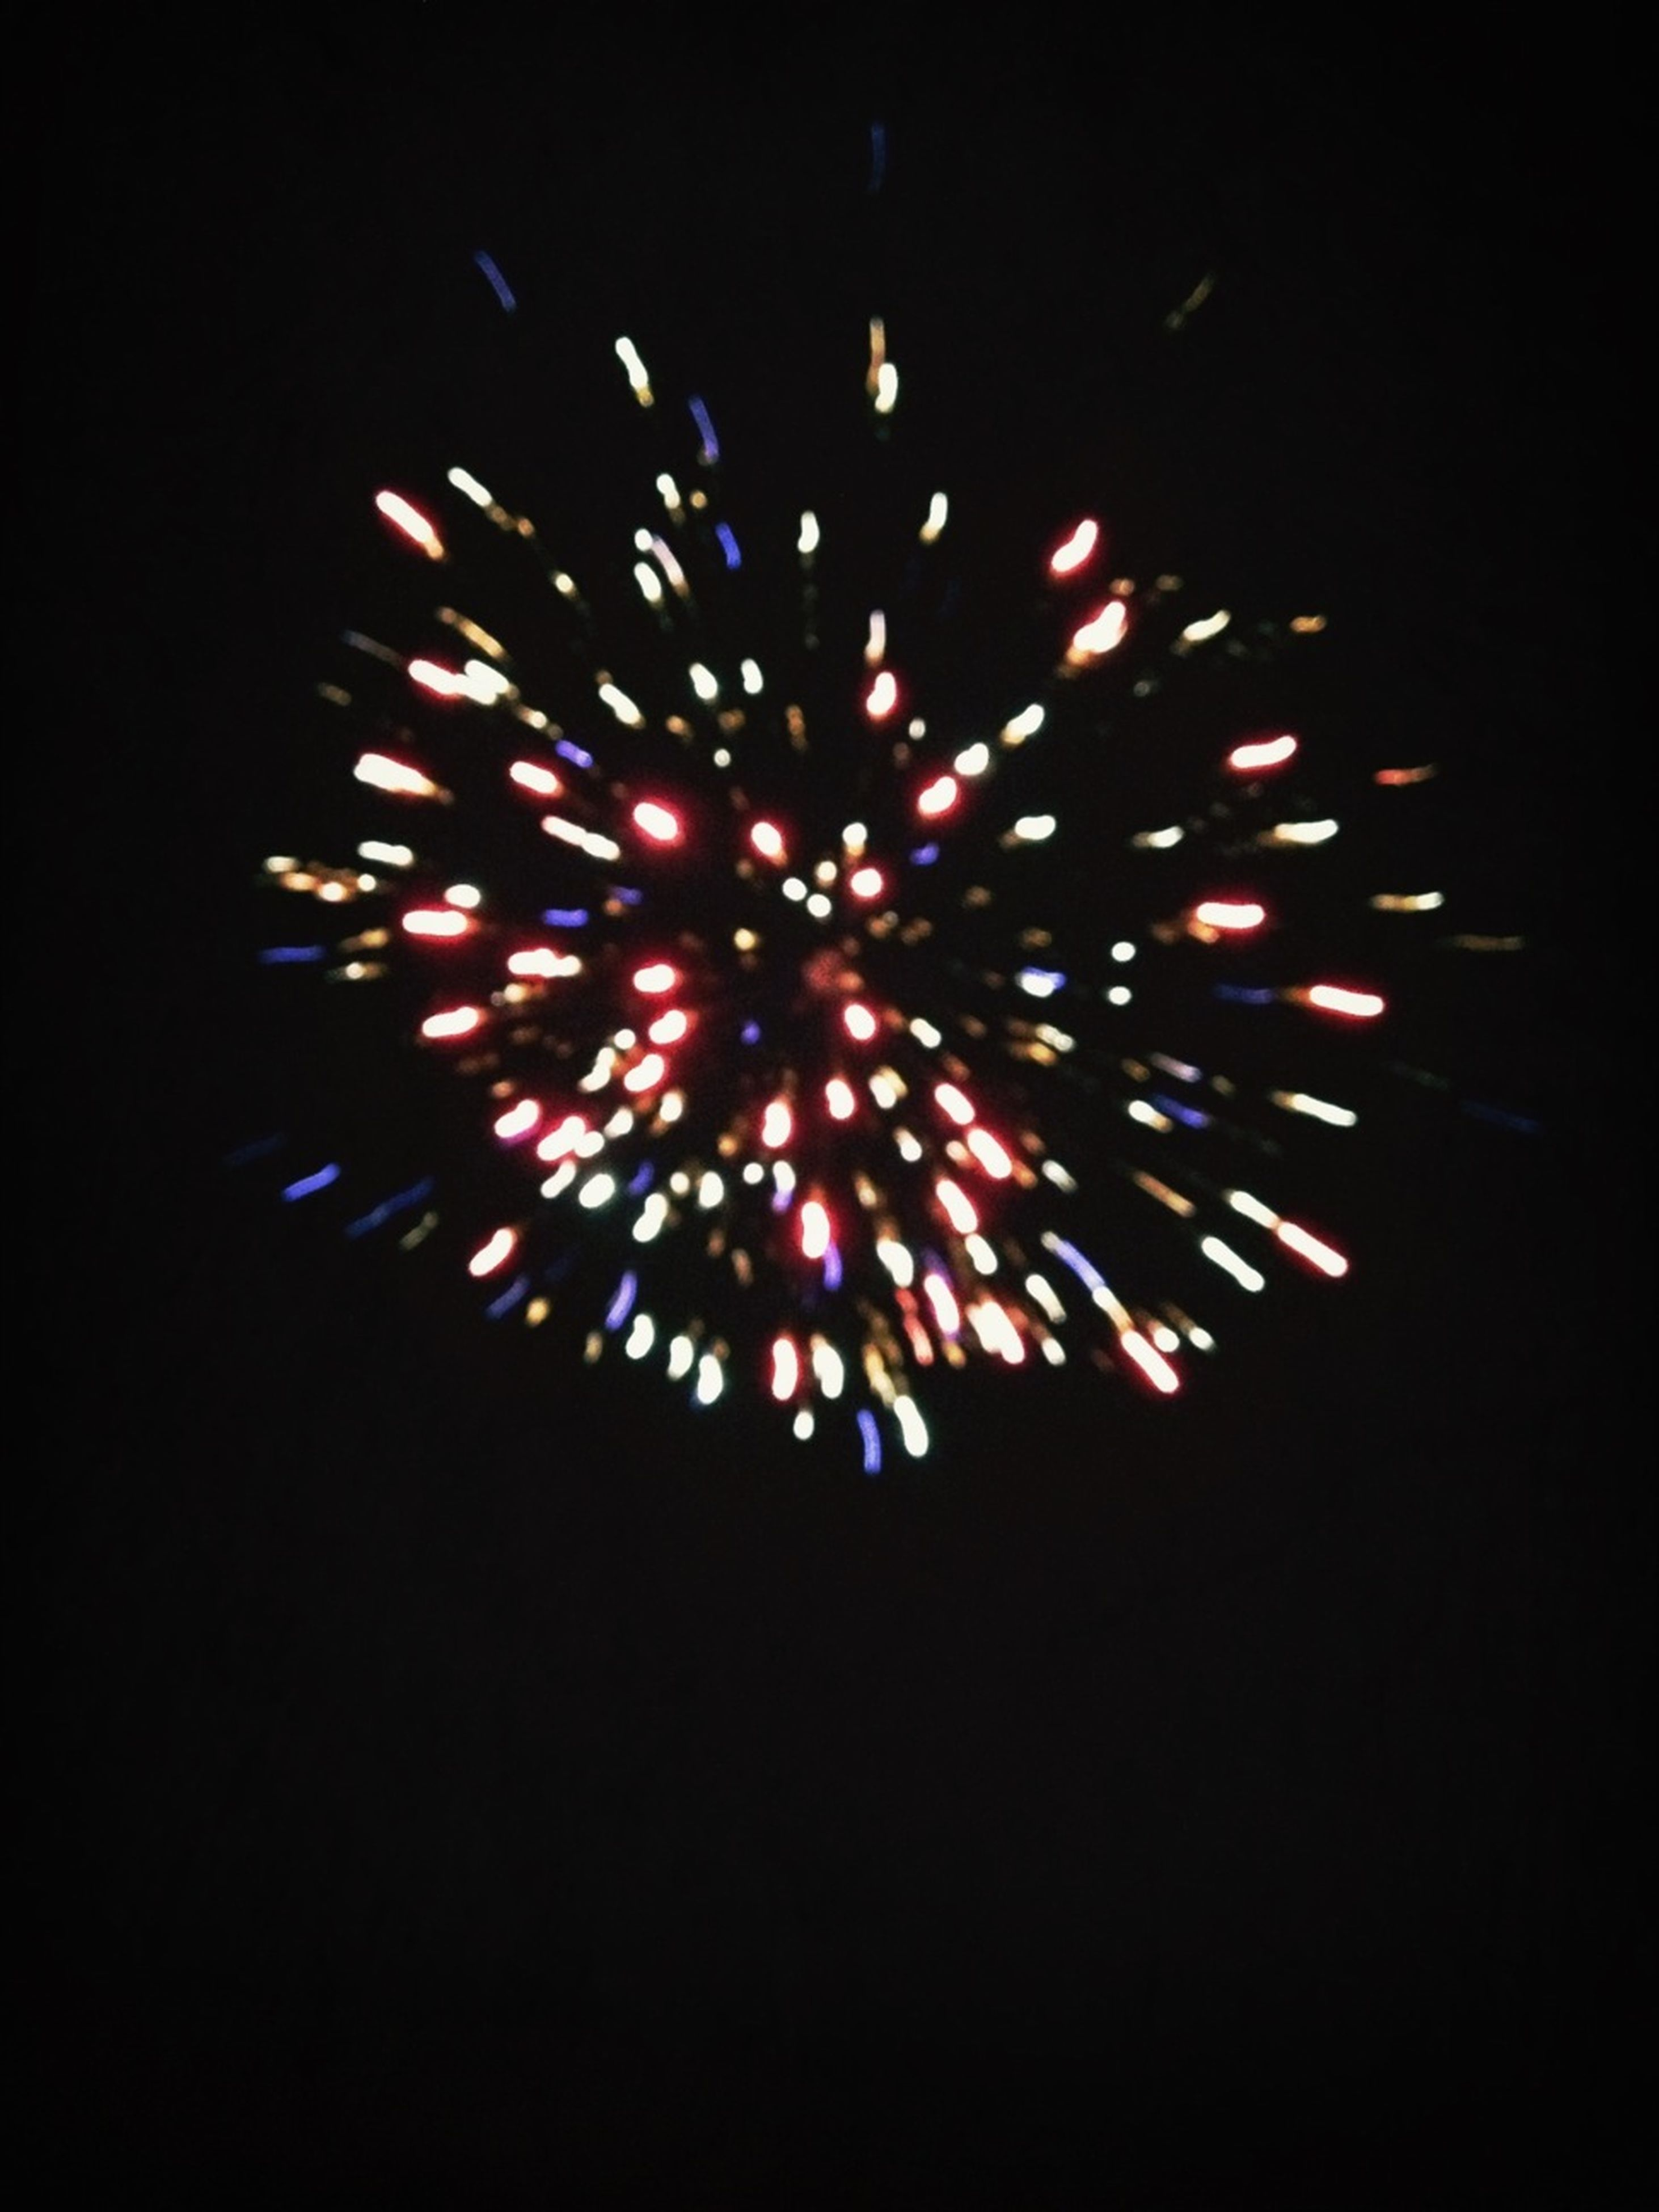 illuminated, night, celebration, firework display, arts culture and entertainment, exploding, low angle view, glowing, event, firework - man made object, long exposure, motion, multi colored, sky, celebration event, entertainment, firework, sparks, lighting equipment, decoration